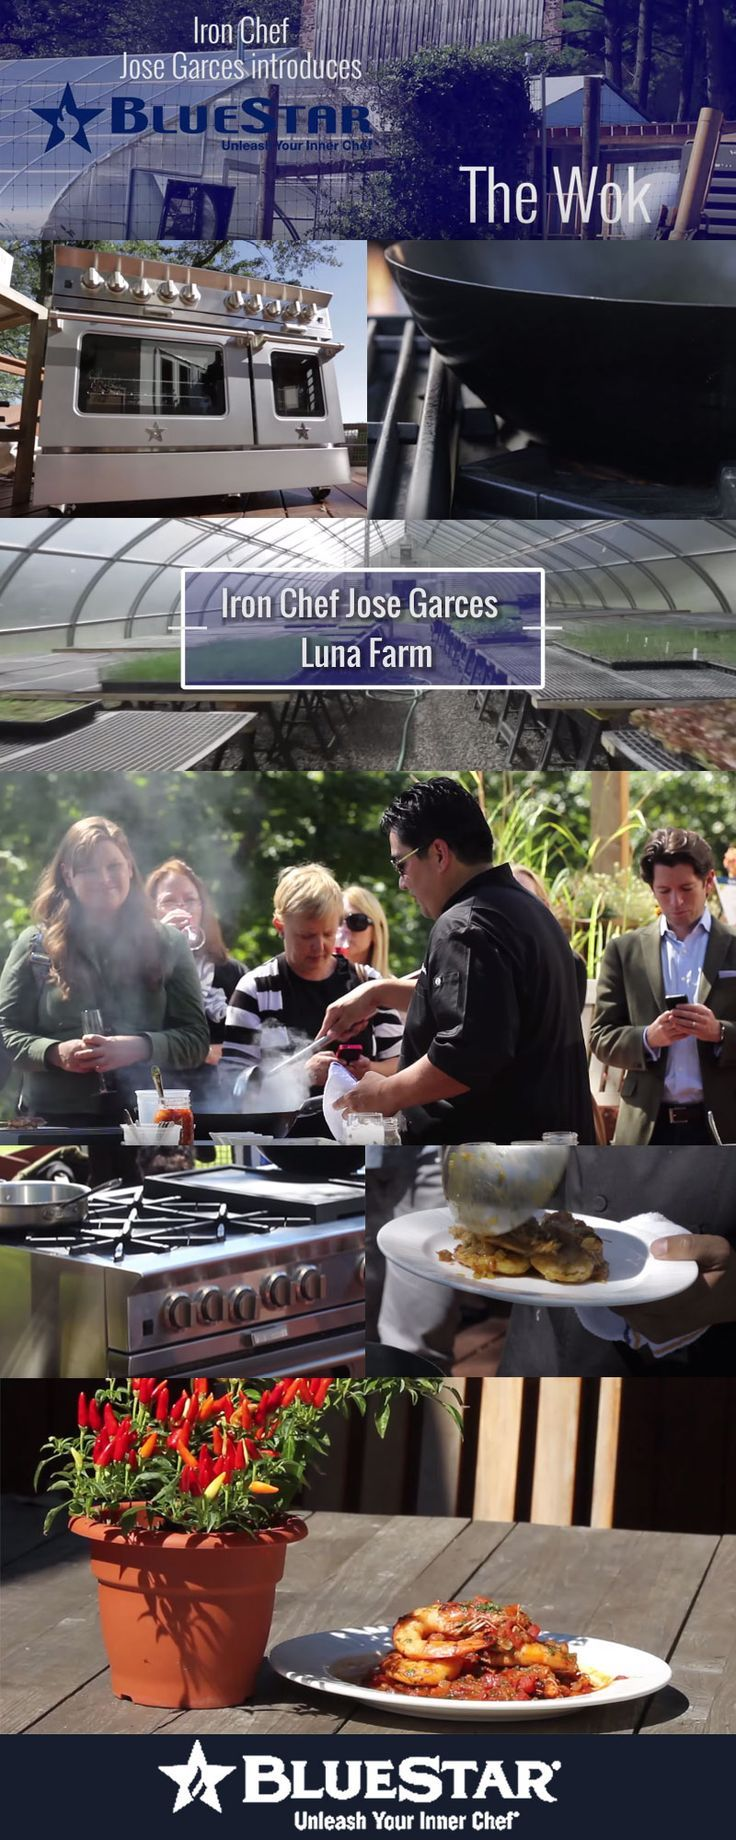 Luxury Lifestyle : Chef Jose Garces Introduces Wok Cooking. Click to watch his masterclass!